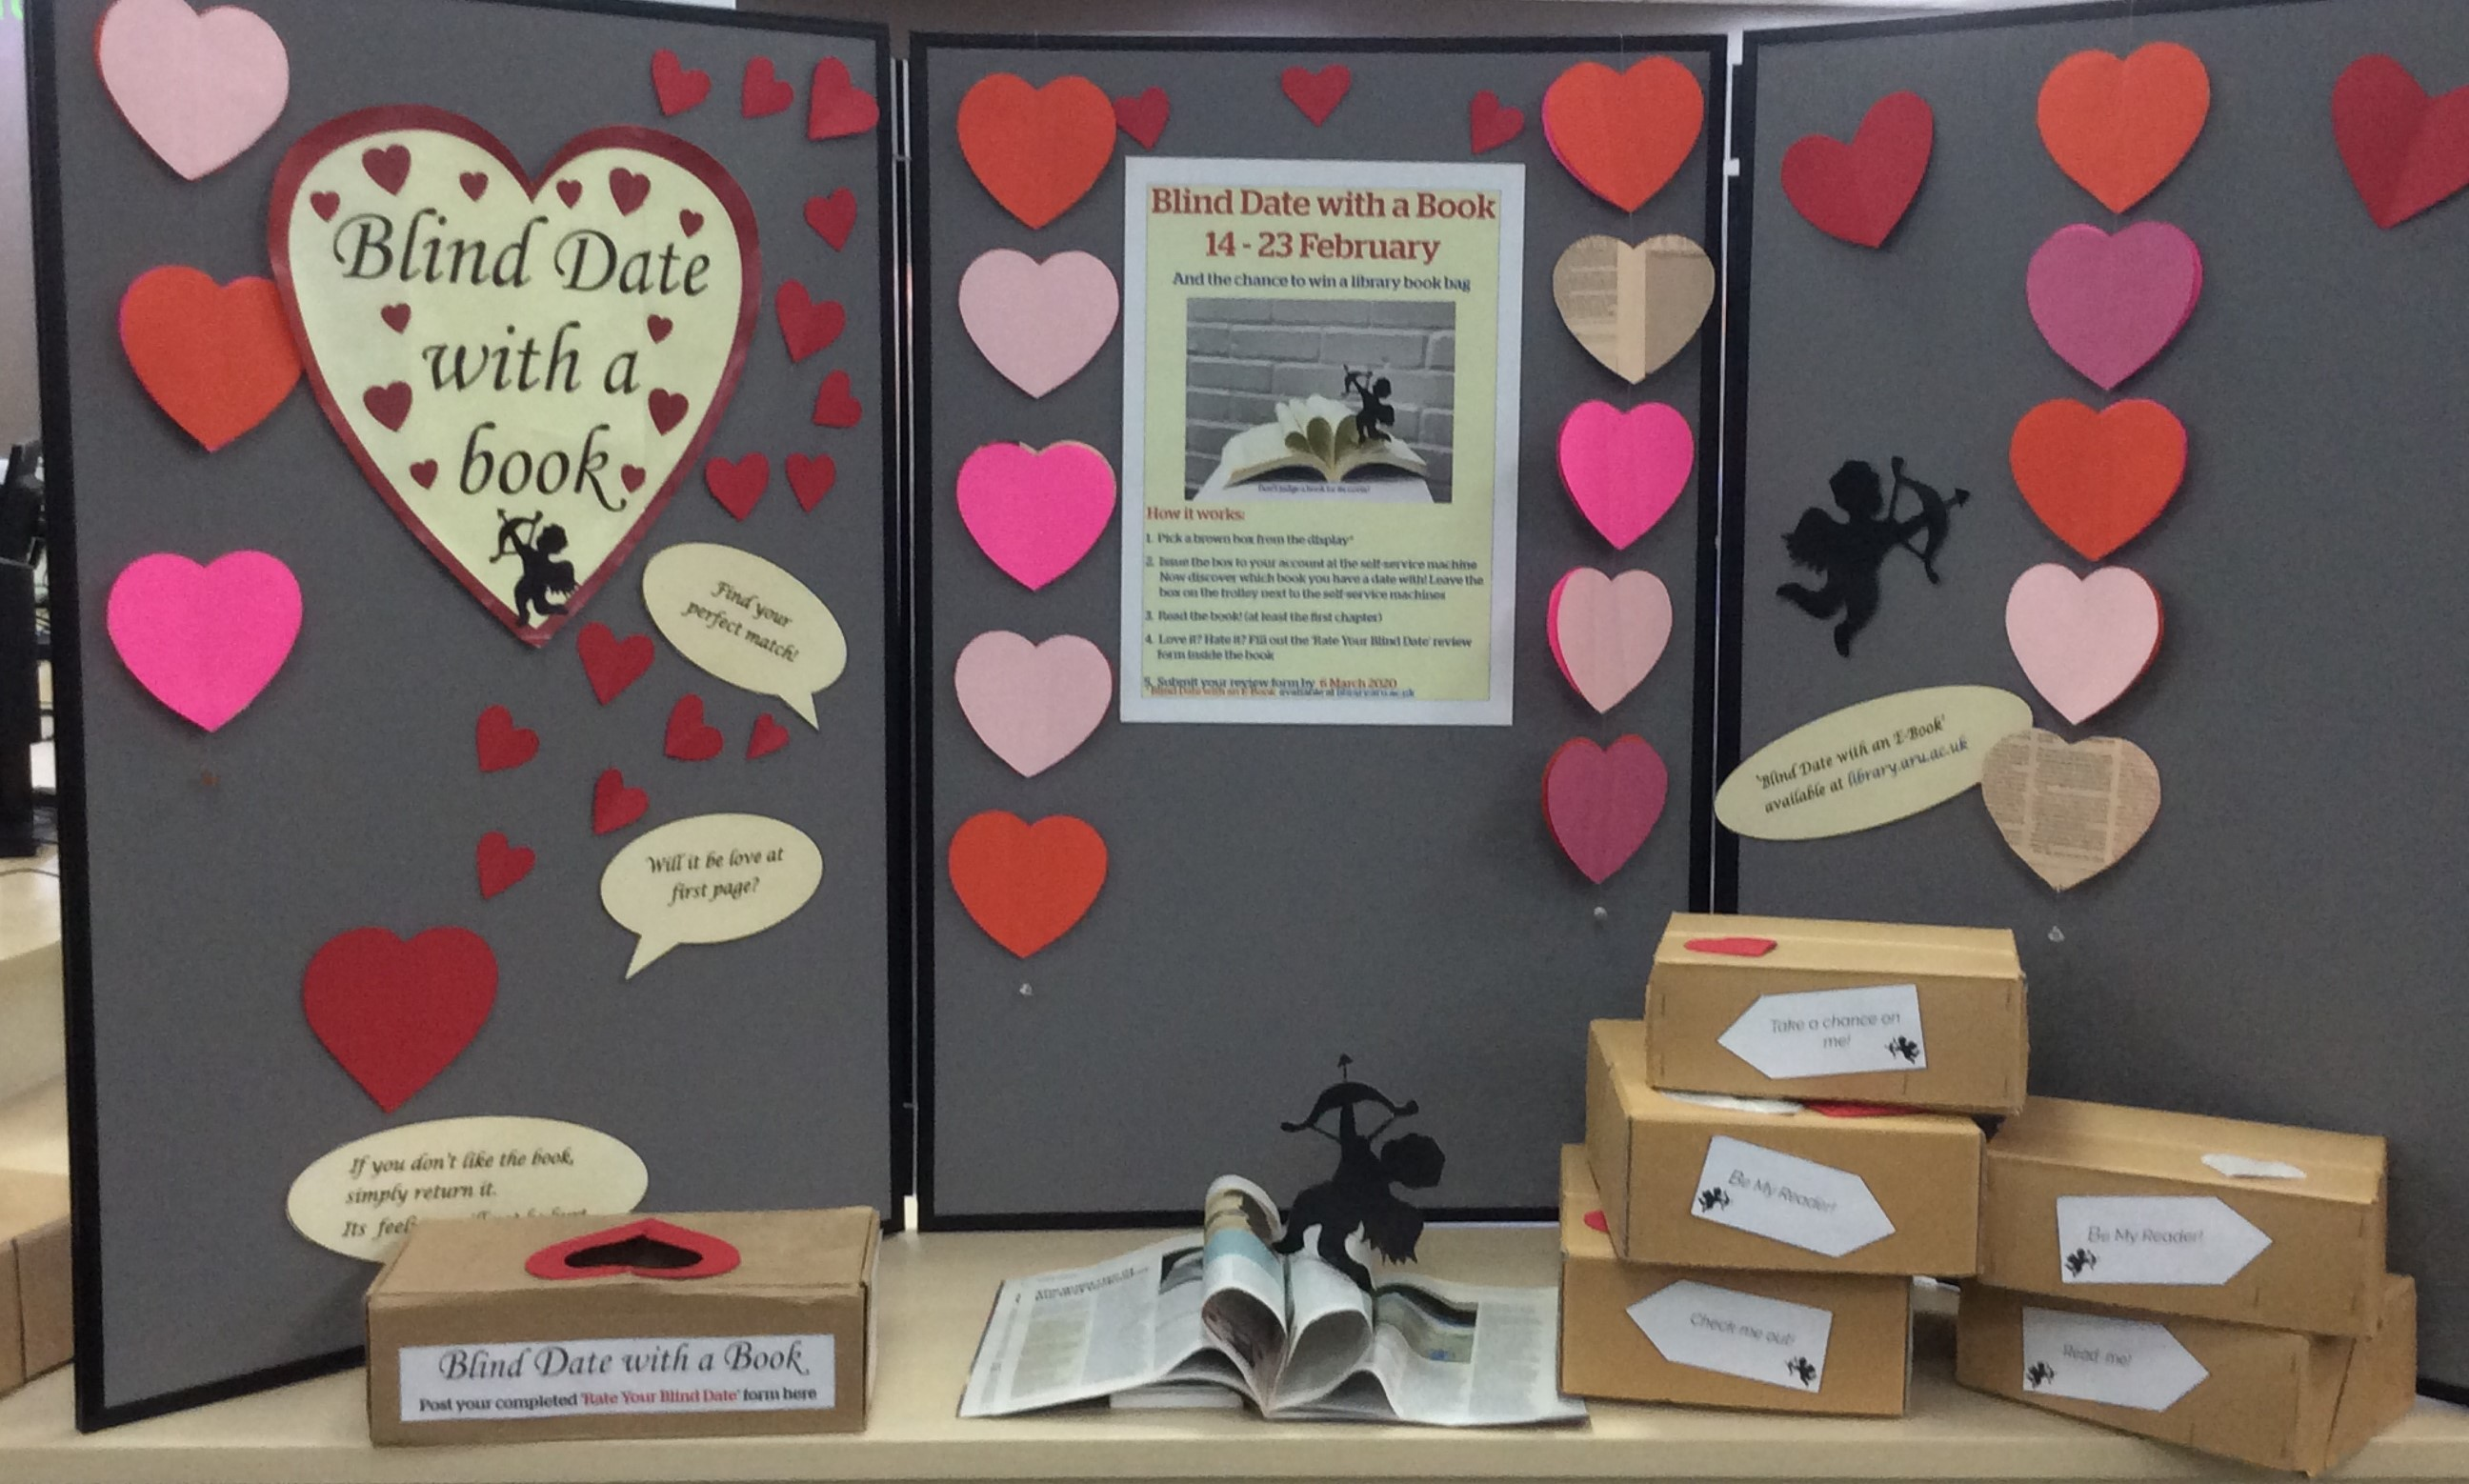 Blind Date with a Book display at Cambridge site